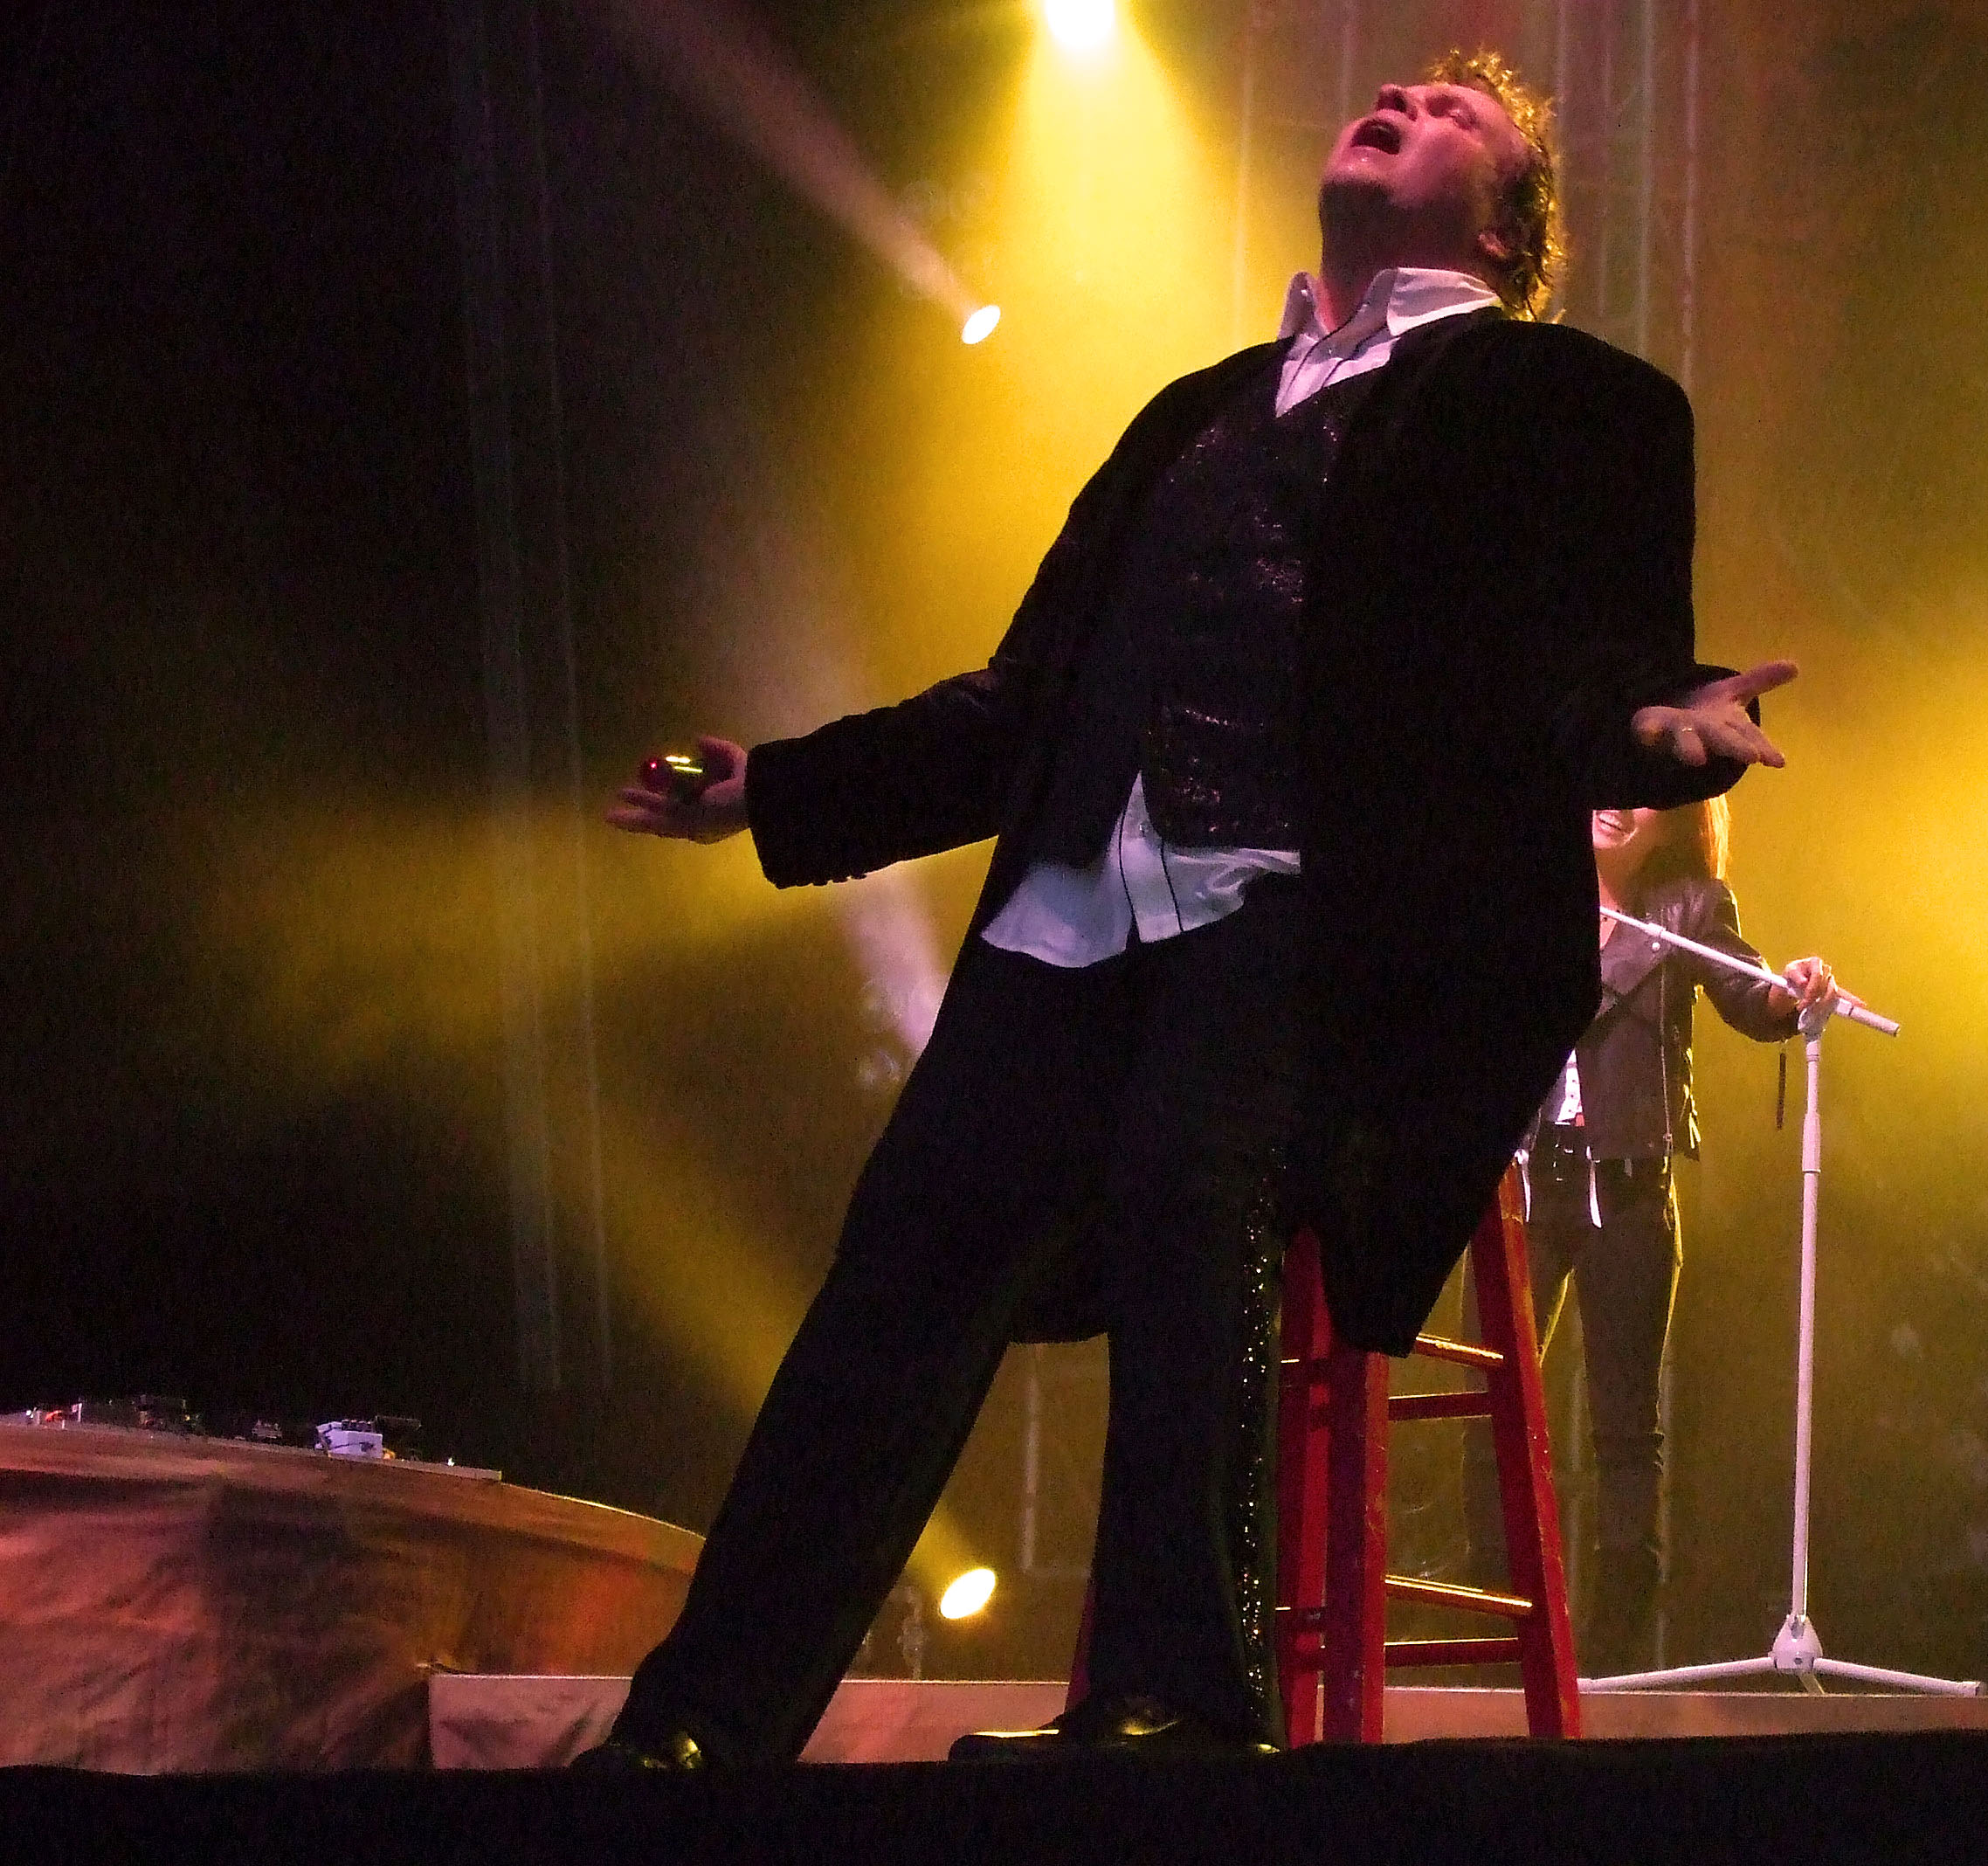 2011 Dates Tour Meat Loaf